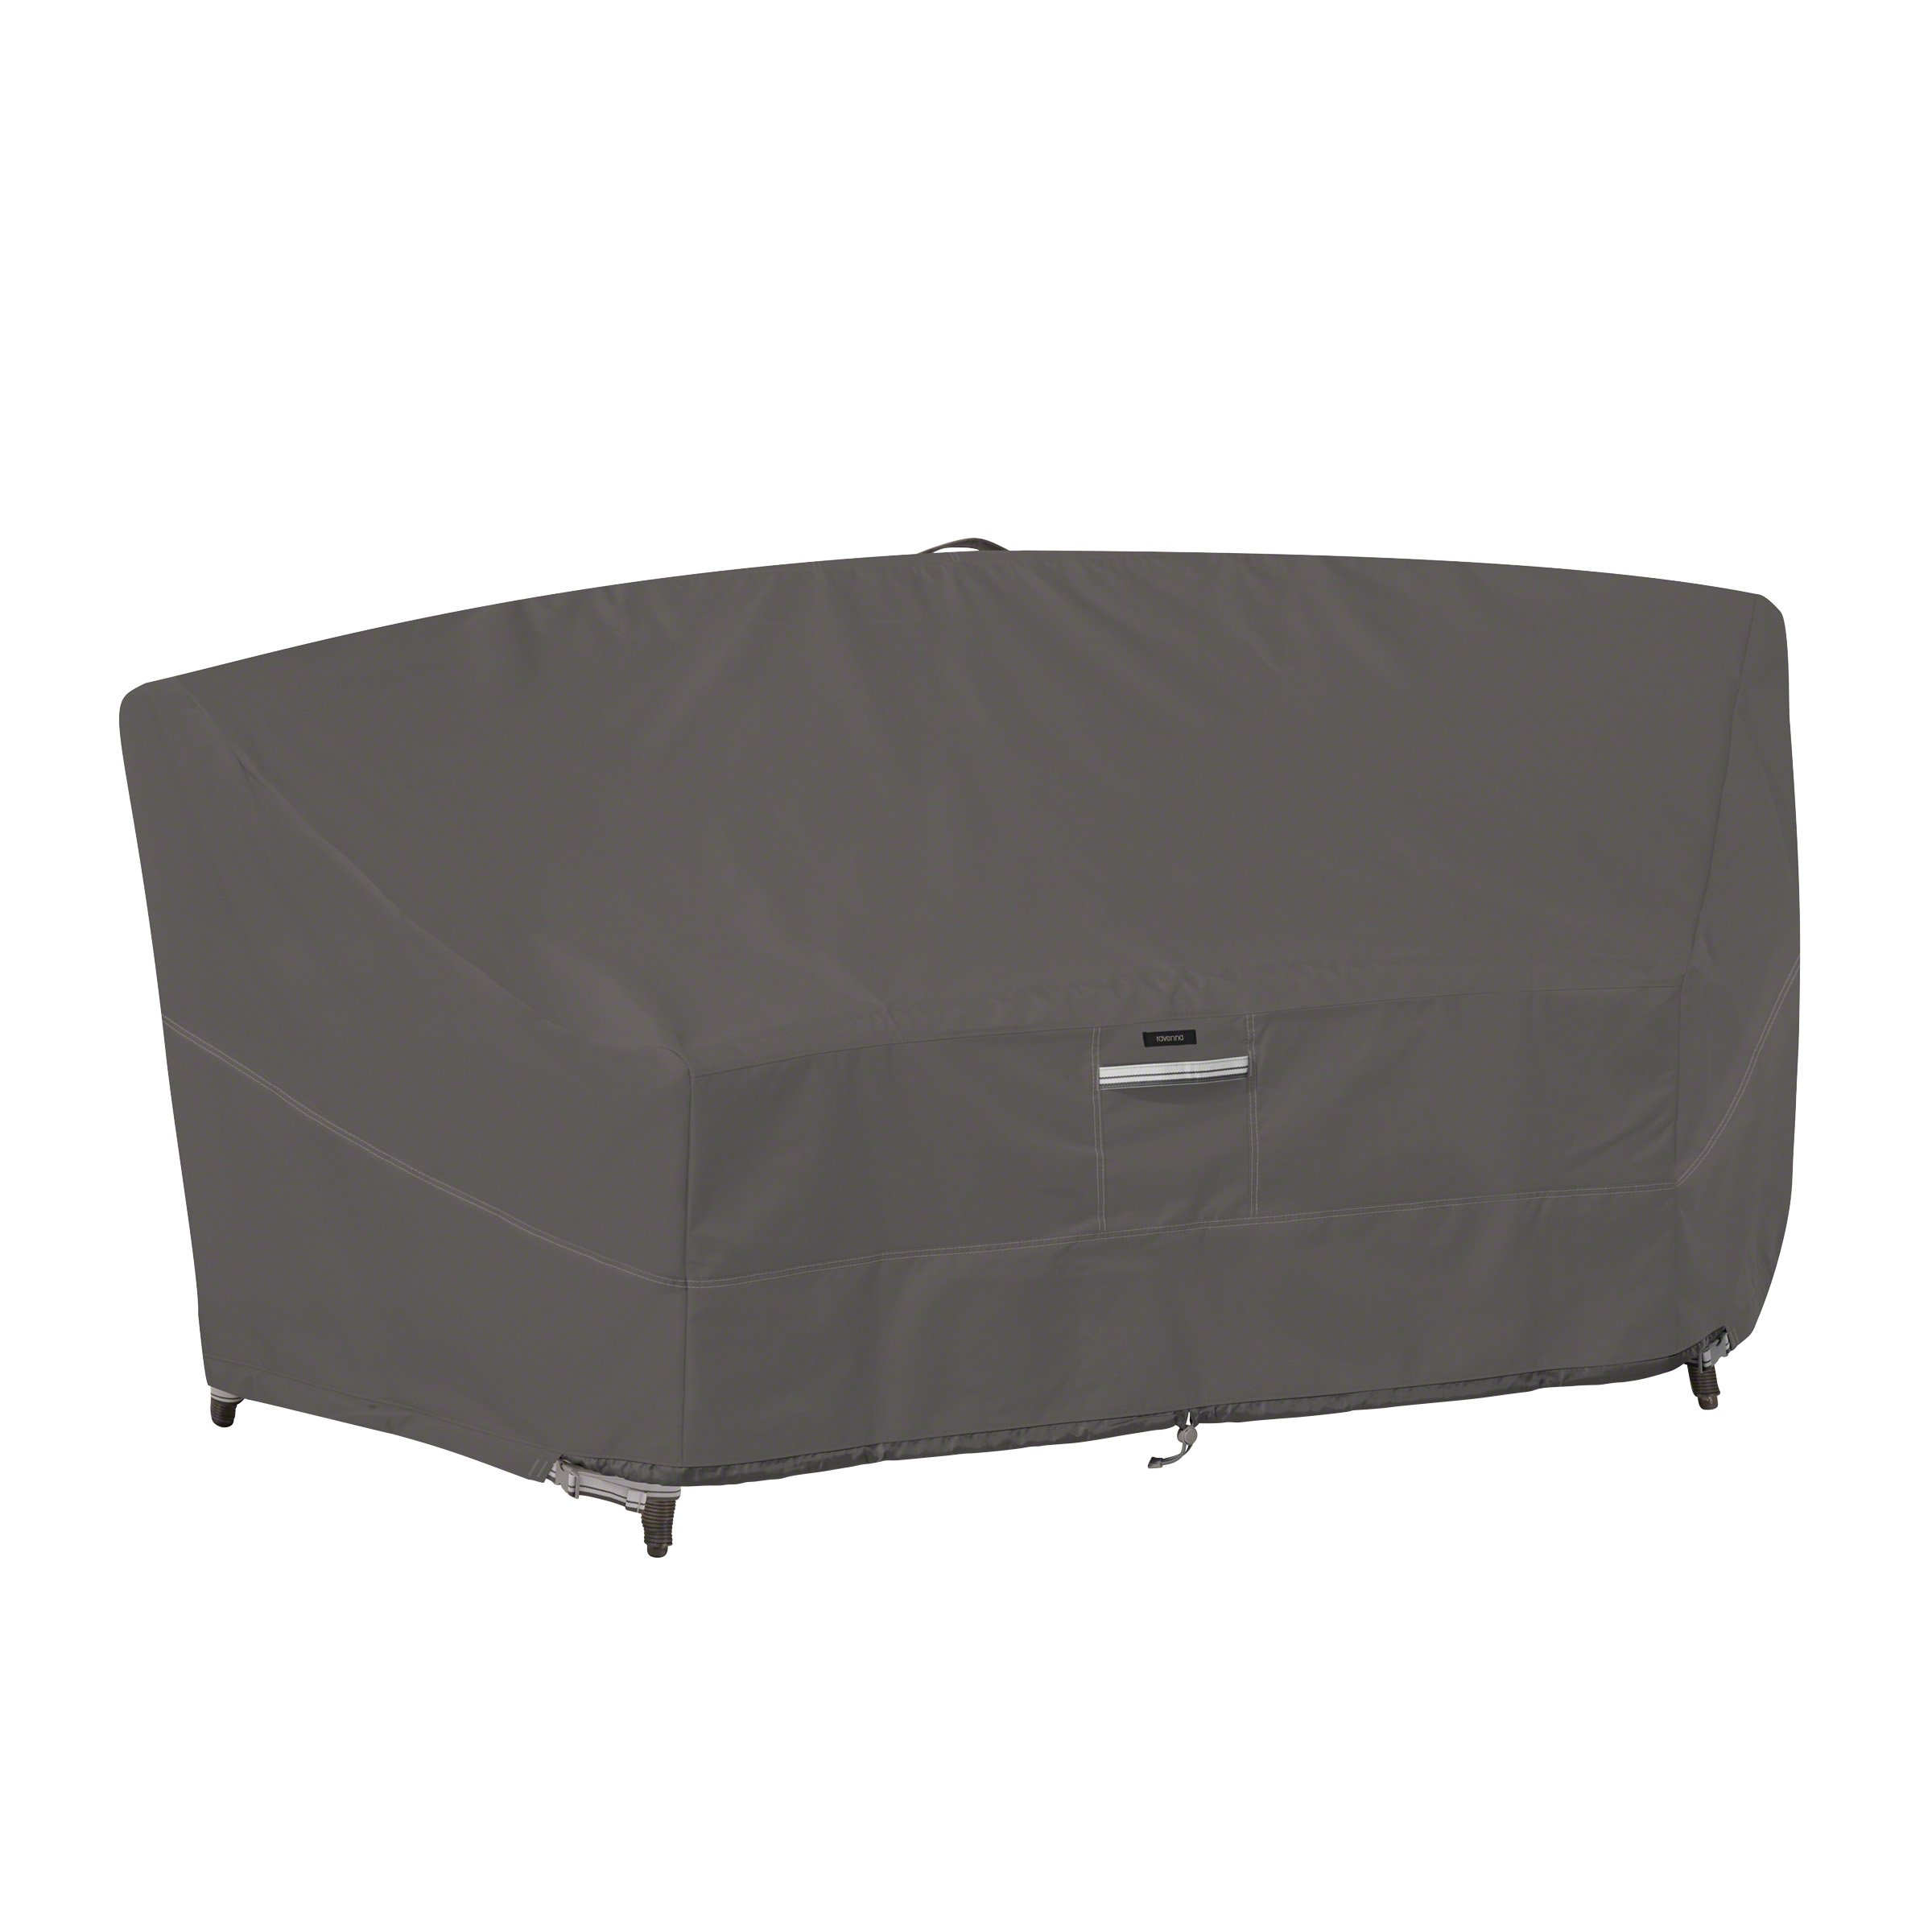 Classic Accessories Ravenna Water-Resistant 46 Inch Patio Curved Modular Sectional Sofa Cover